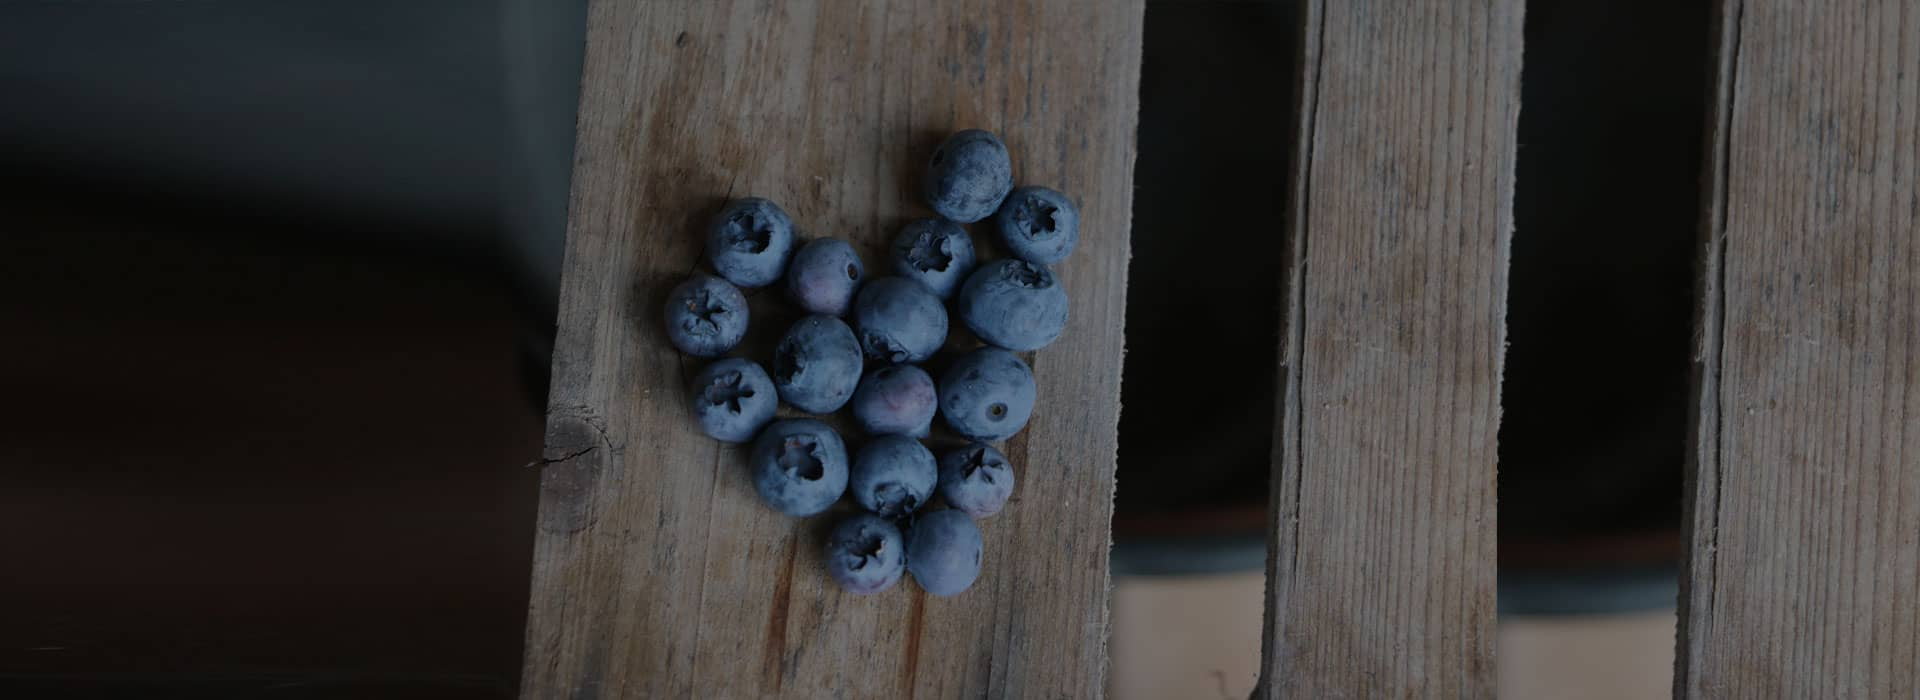 What is useful blueberries 36